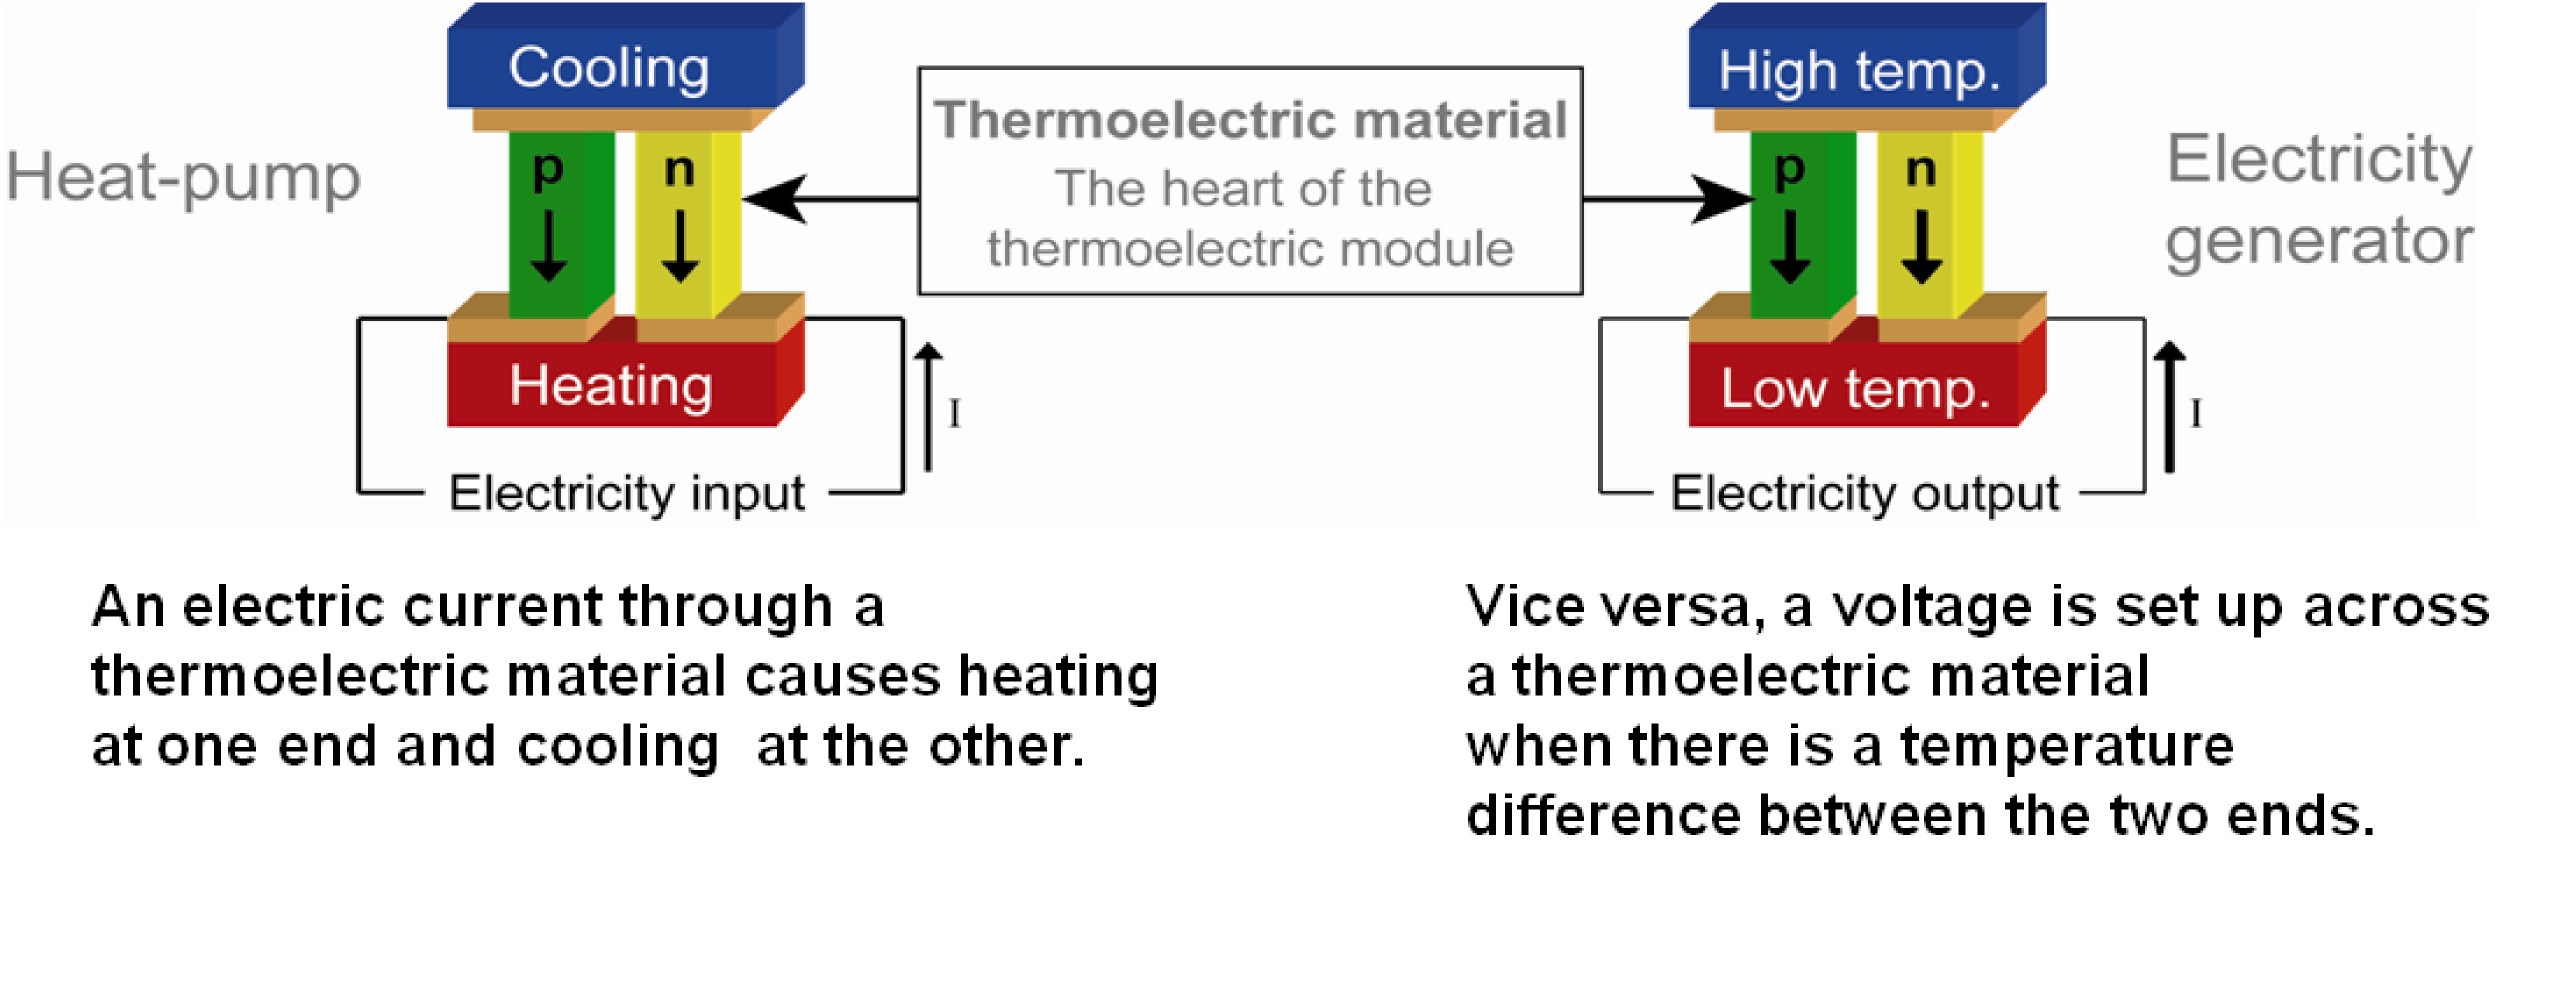 Thermoelectric module as cooler and thermoelectric generator